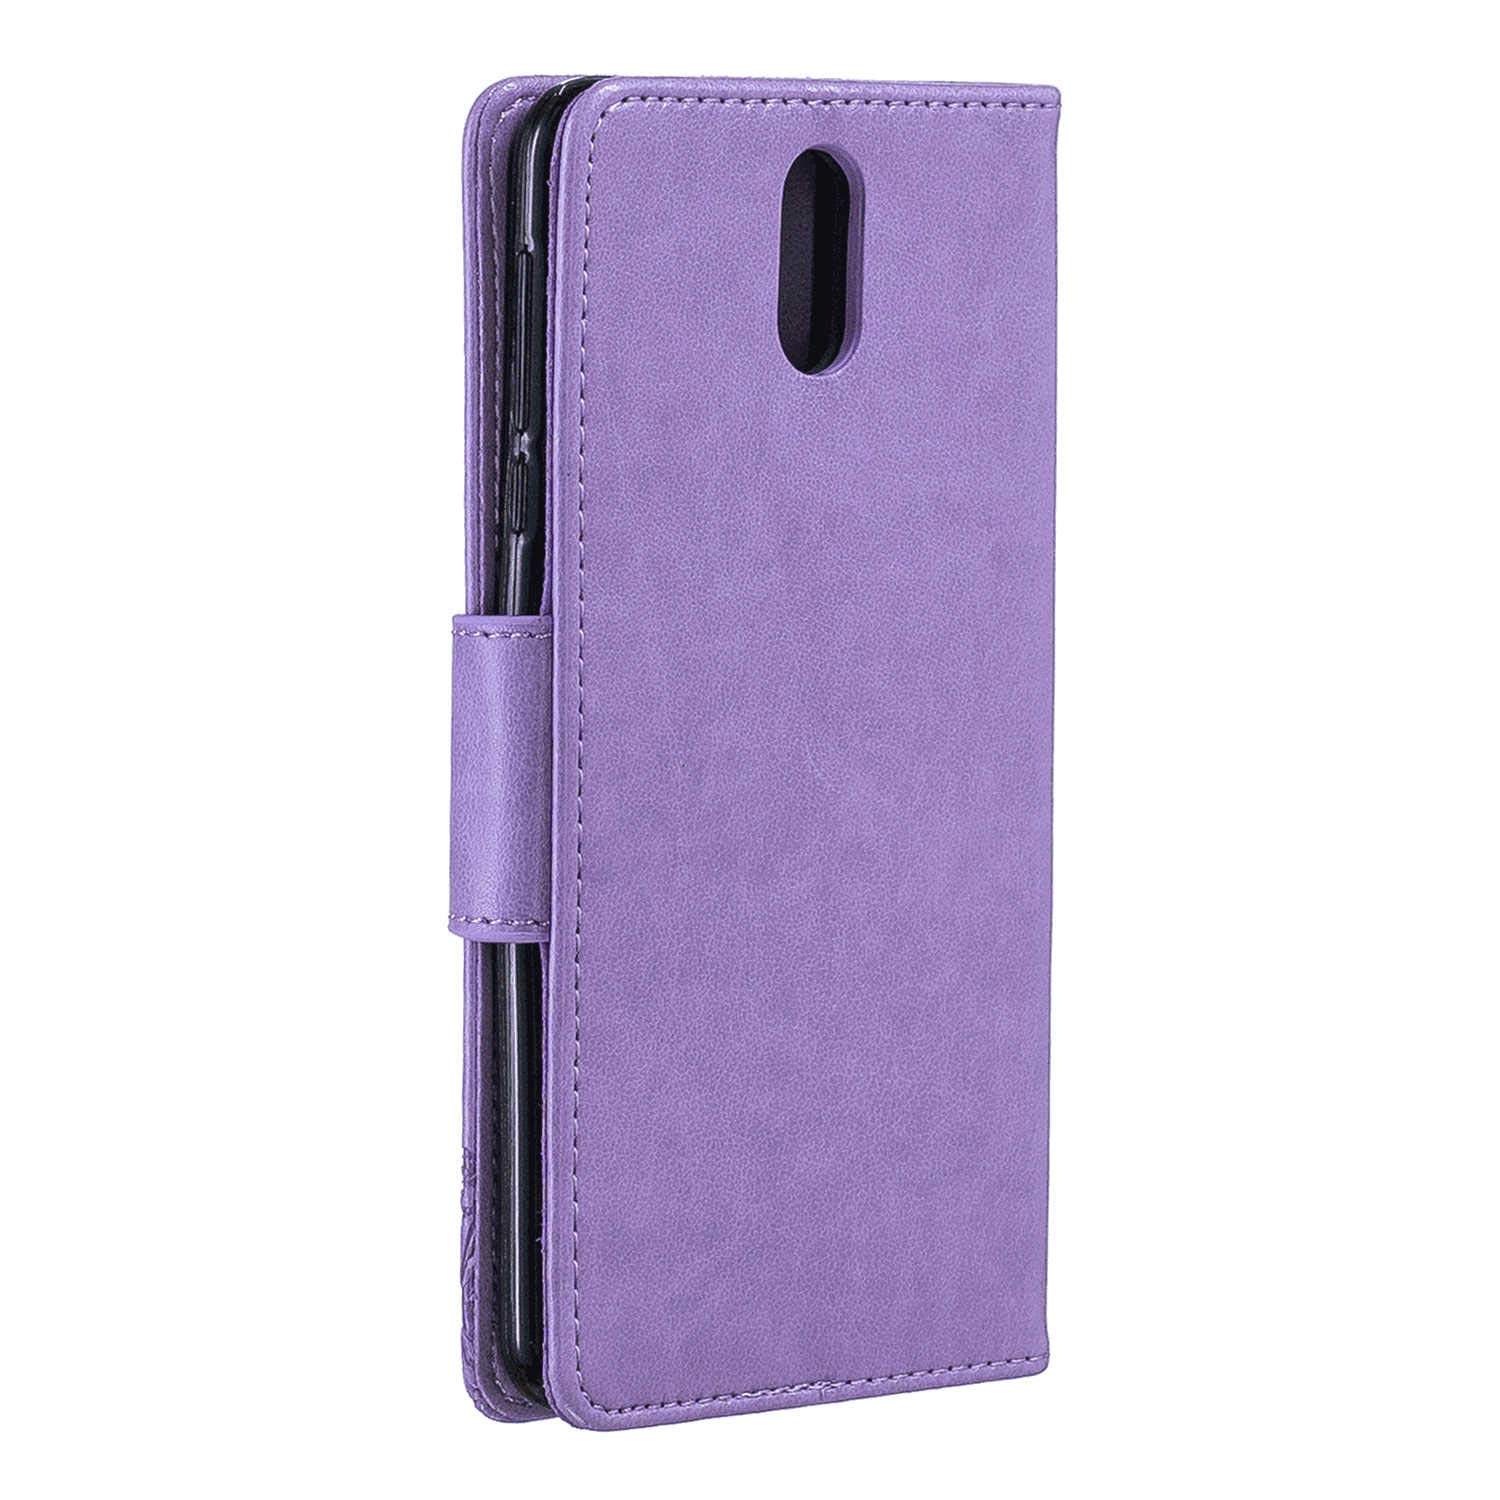 Cover for iPhone XR Leather Extra-Protective Business Card Holders Kickstand Cell Phone case with Free iPhone XR Flip Case